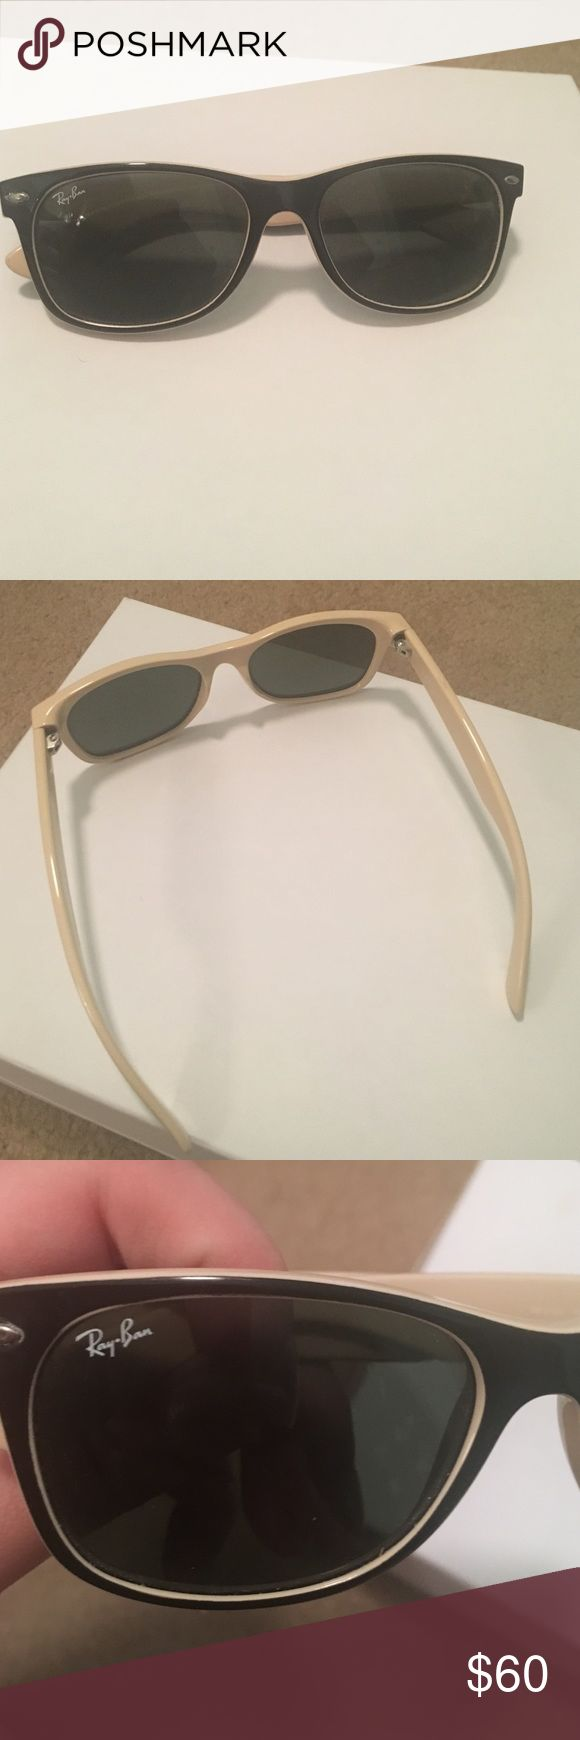 Ray ban wayfarers Classic nude and black Ray Ban Wayfarers, no scratches! All offers considered, willing to list/sell on merc or pp Ray-Ban Accessories Sunglasses